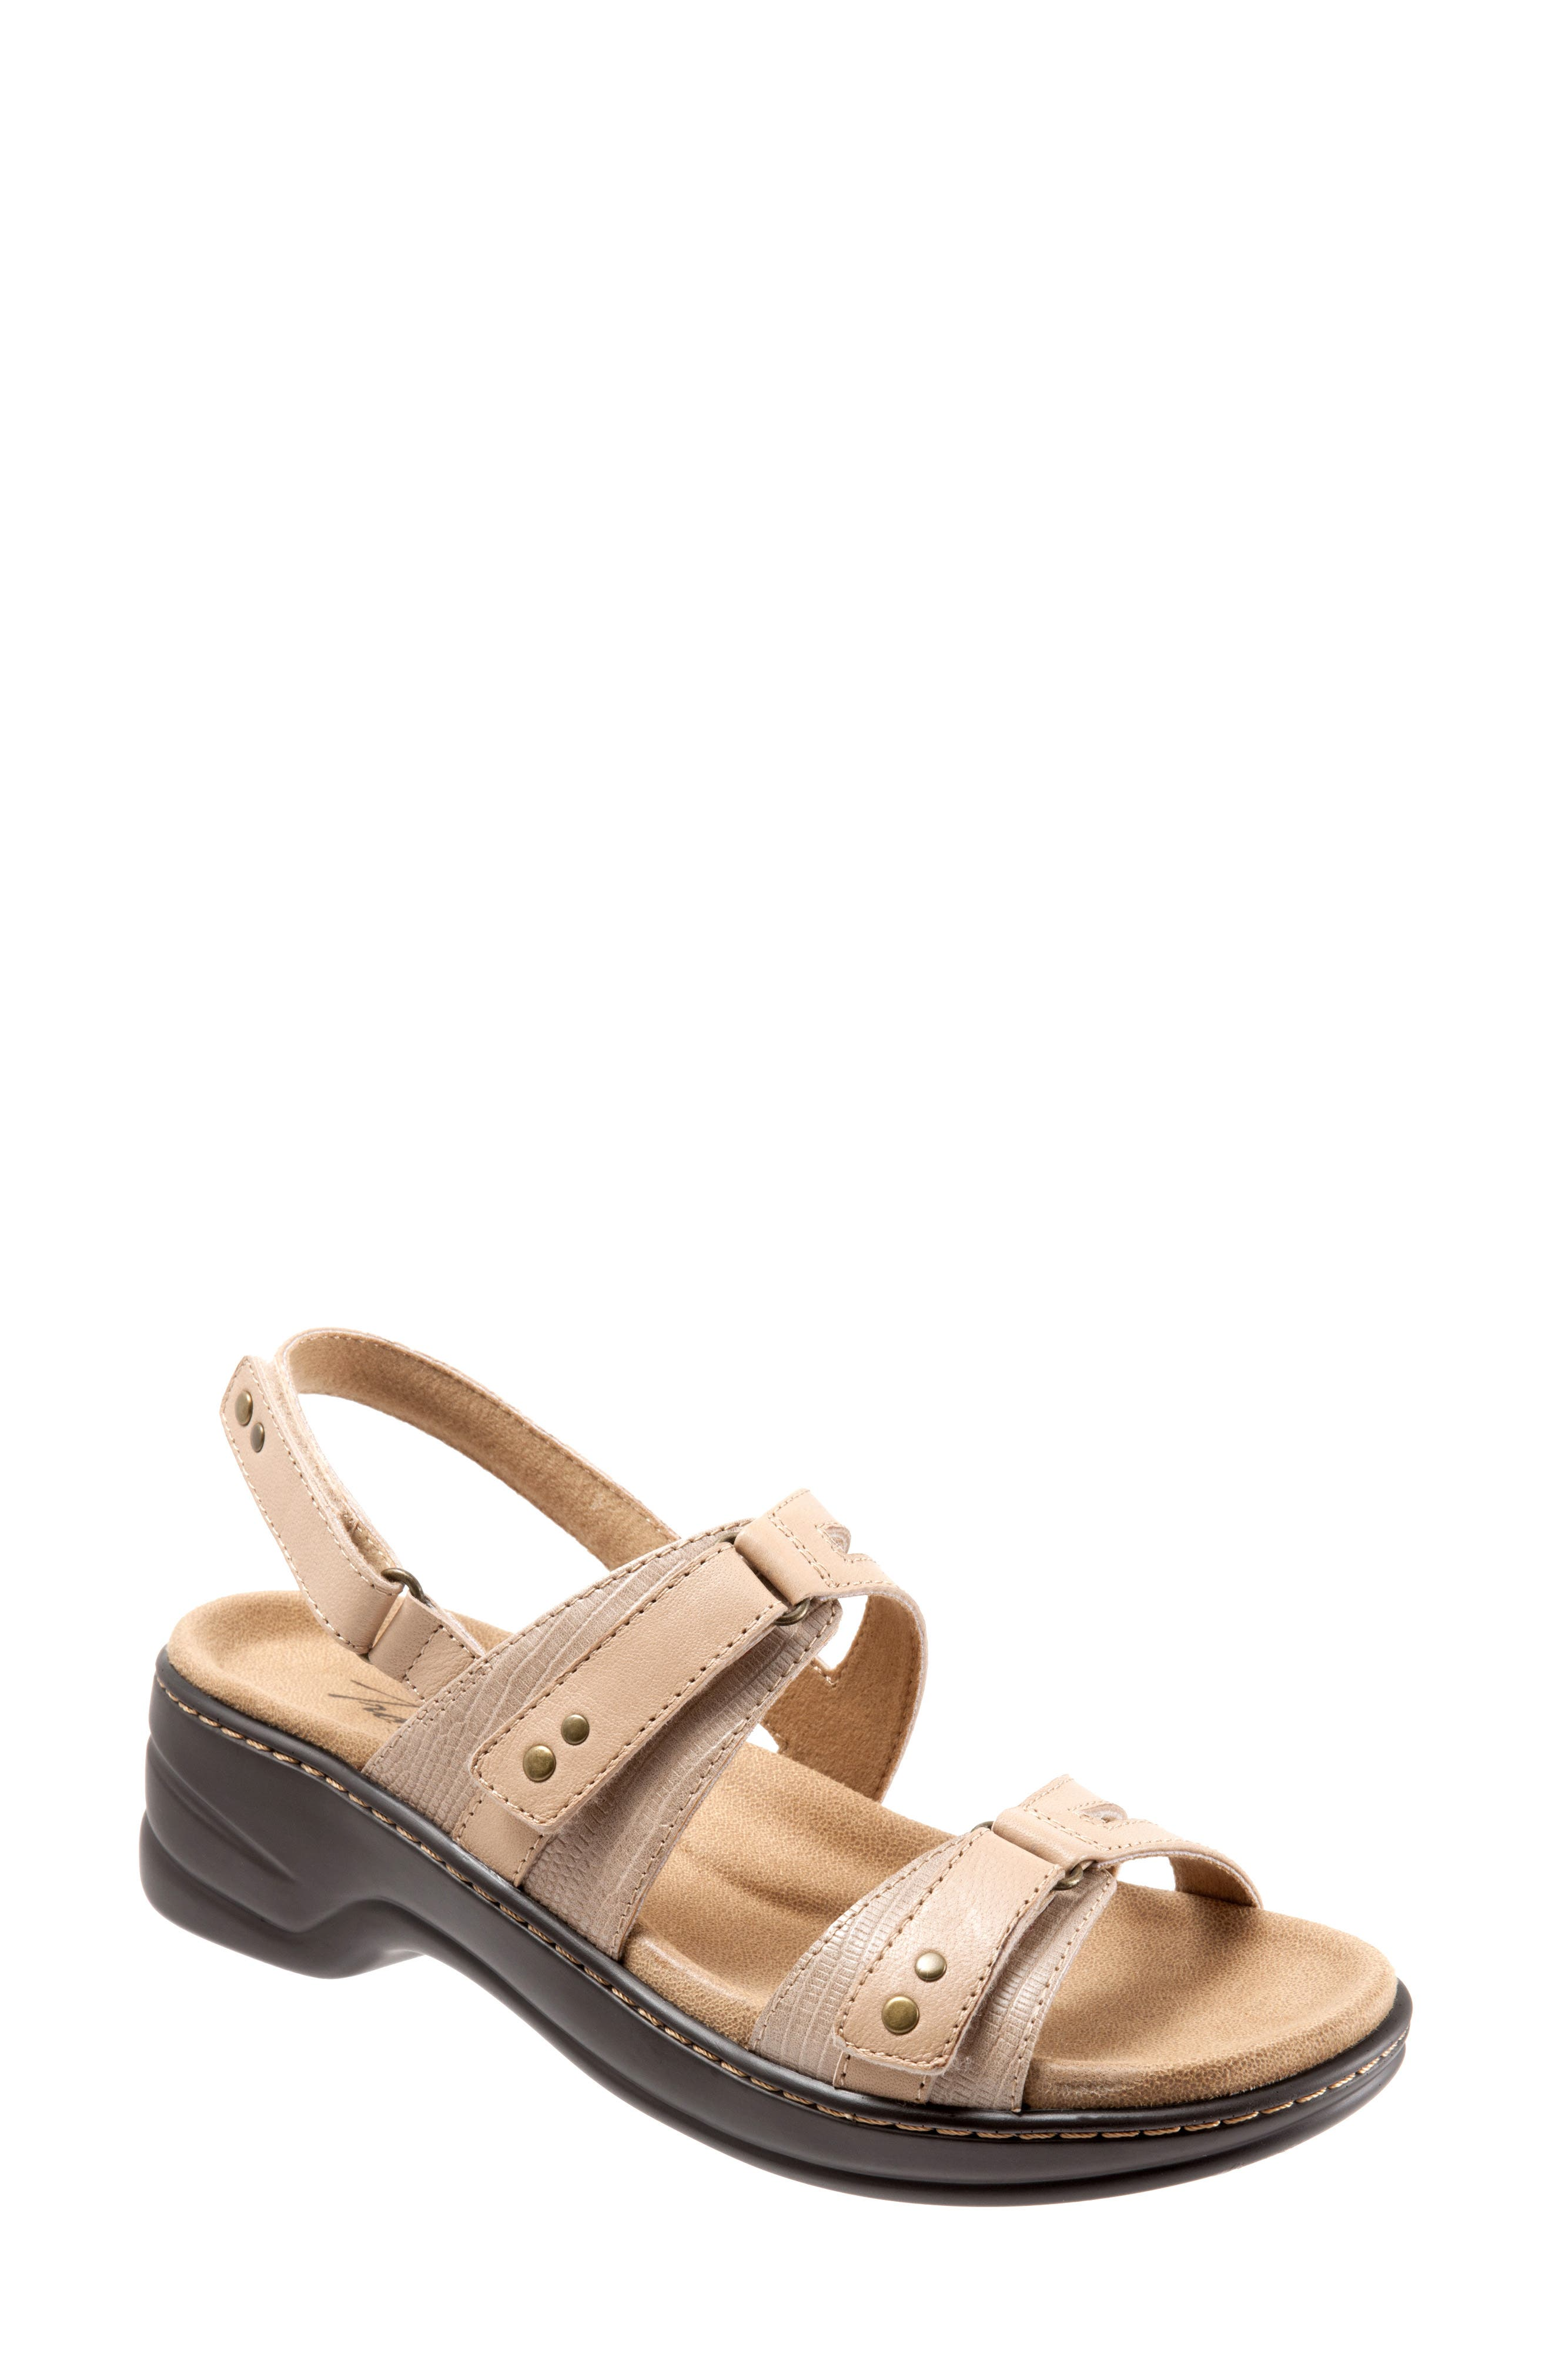 Newton Sandal,                         Main,                         color, Beige/ Off White Leather